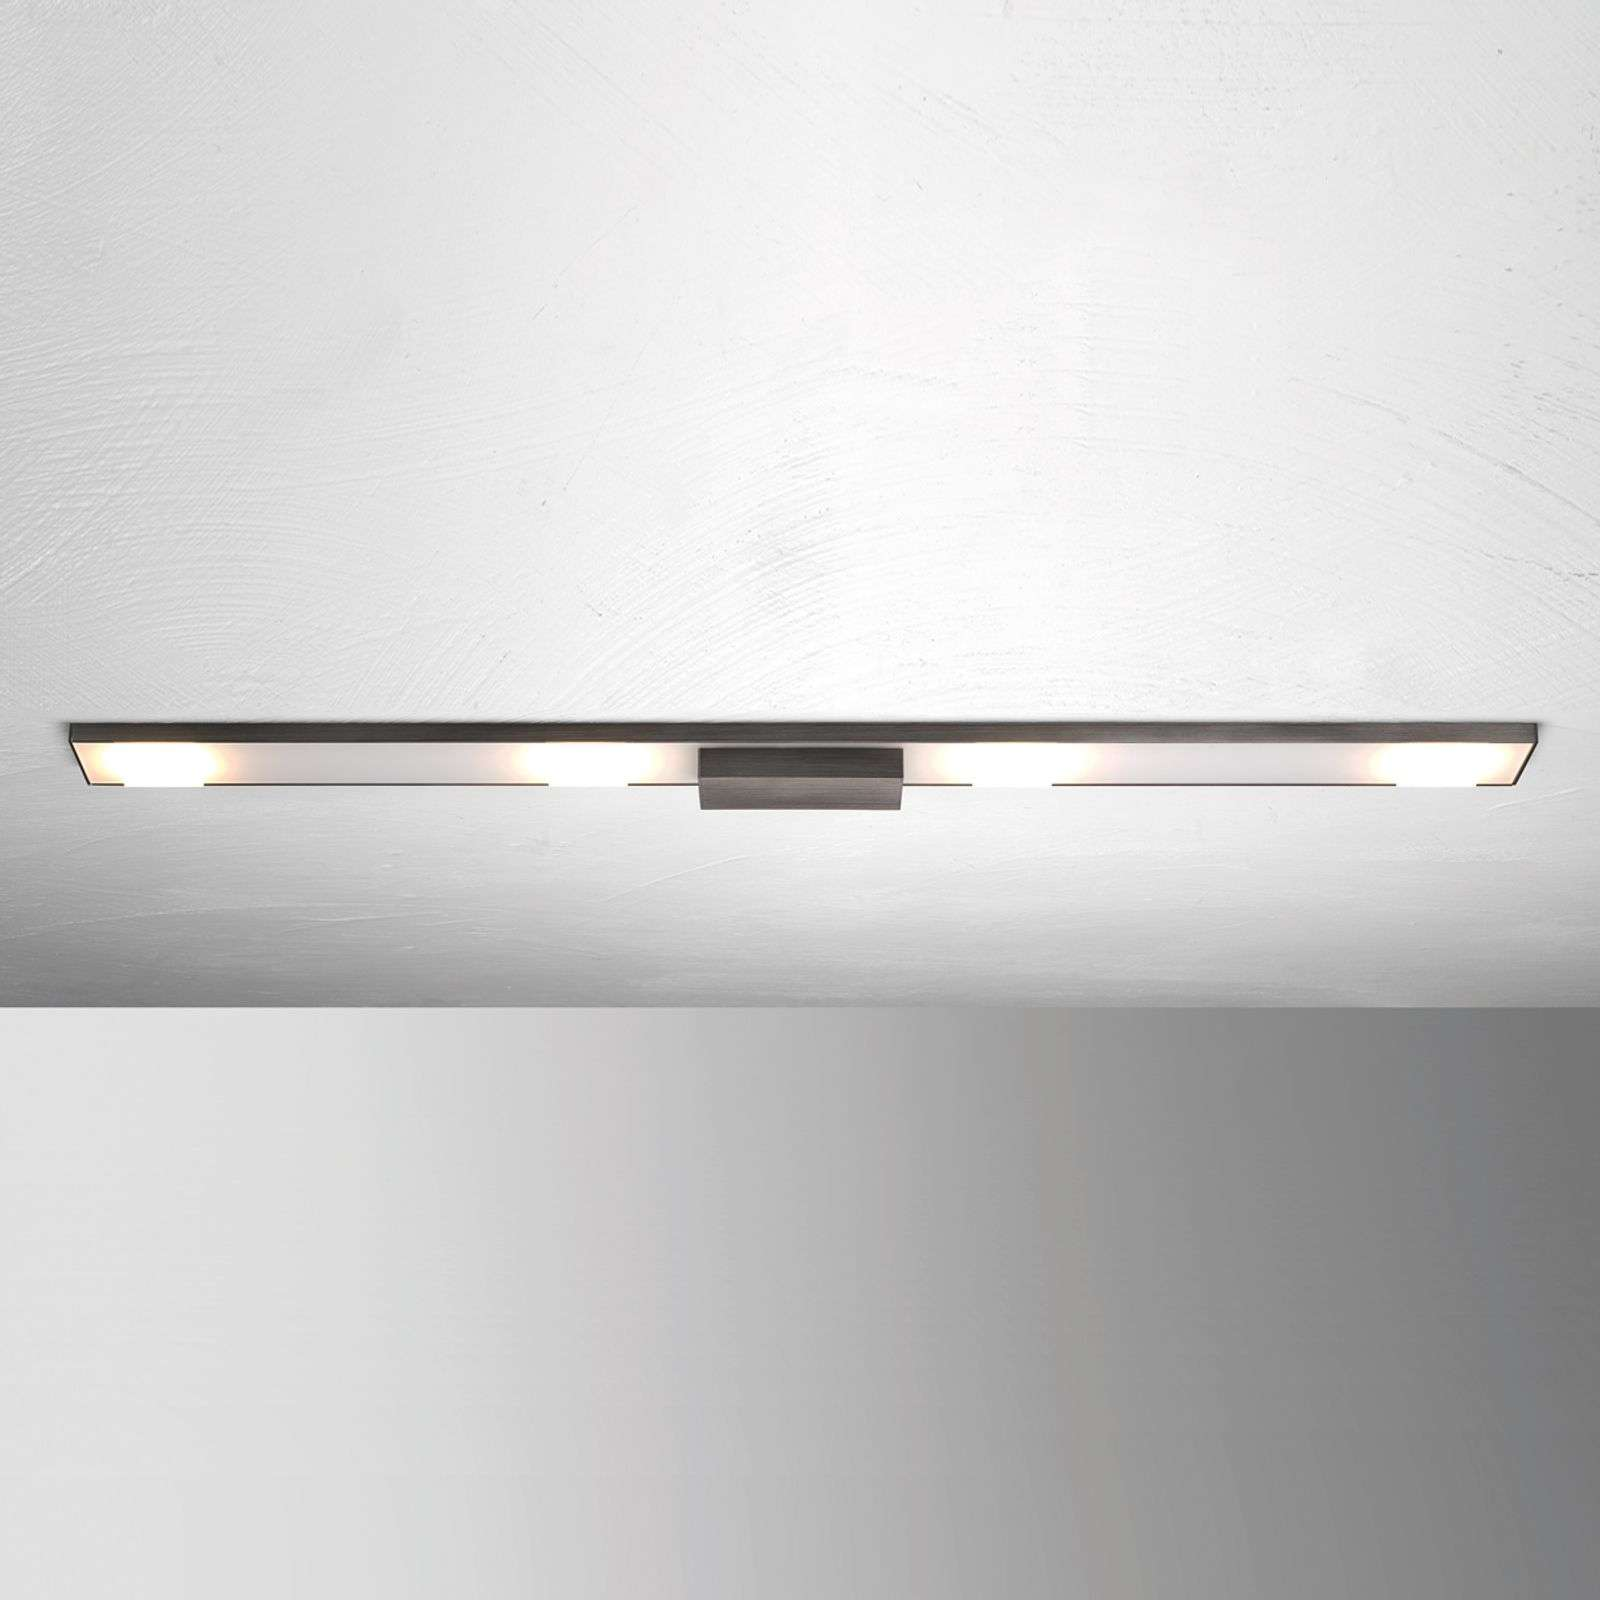 Plafoniera LED Slight 4 punti luce, antracite